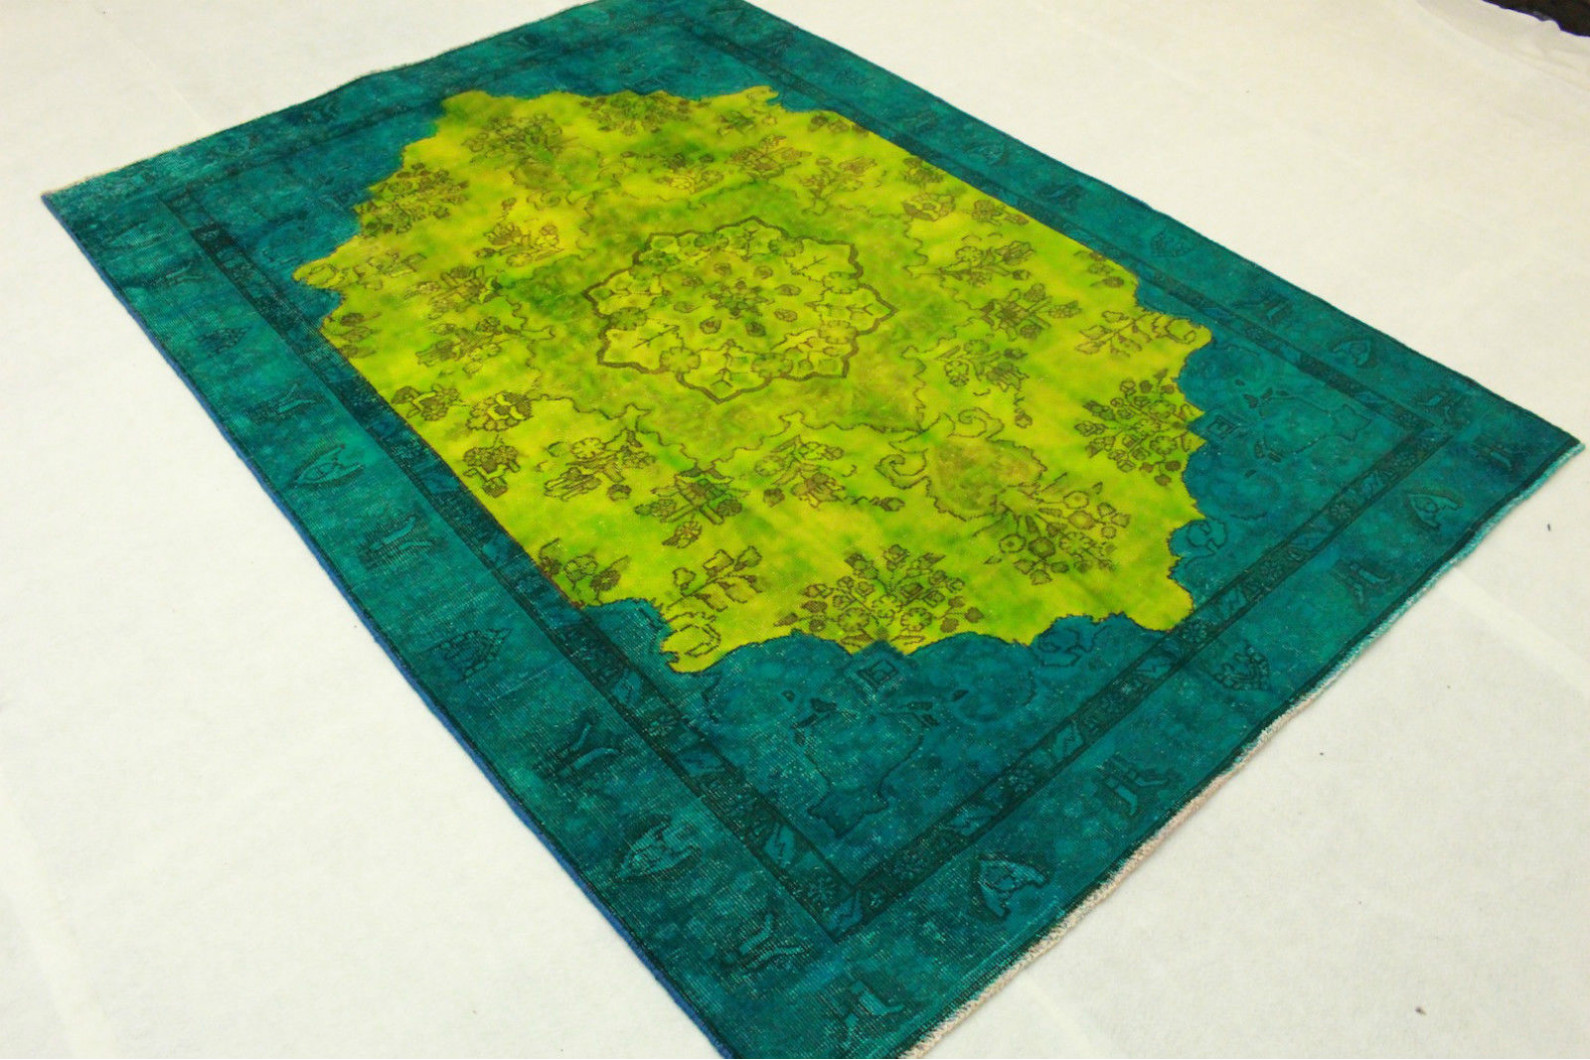 Vintage Rug Green Turquoise In 270x190cm 1001 3203 Buy